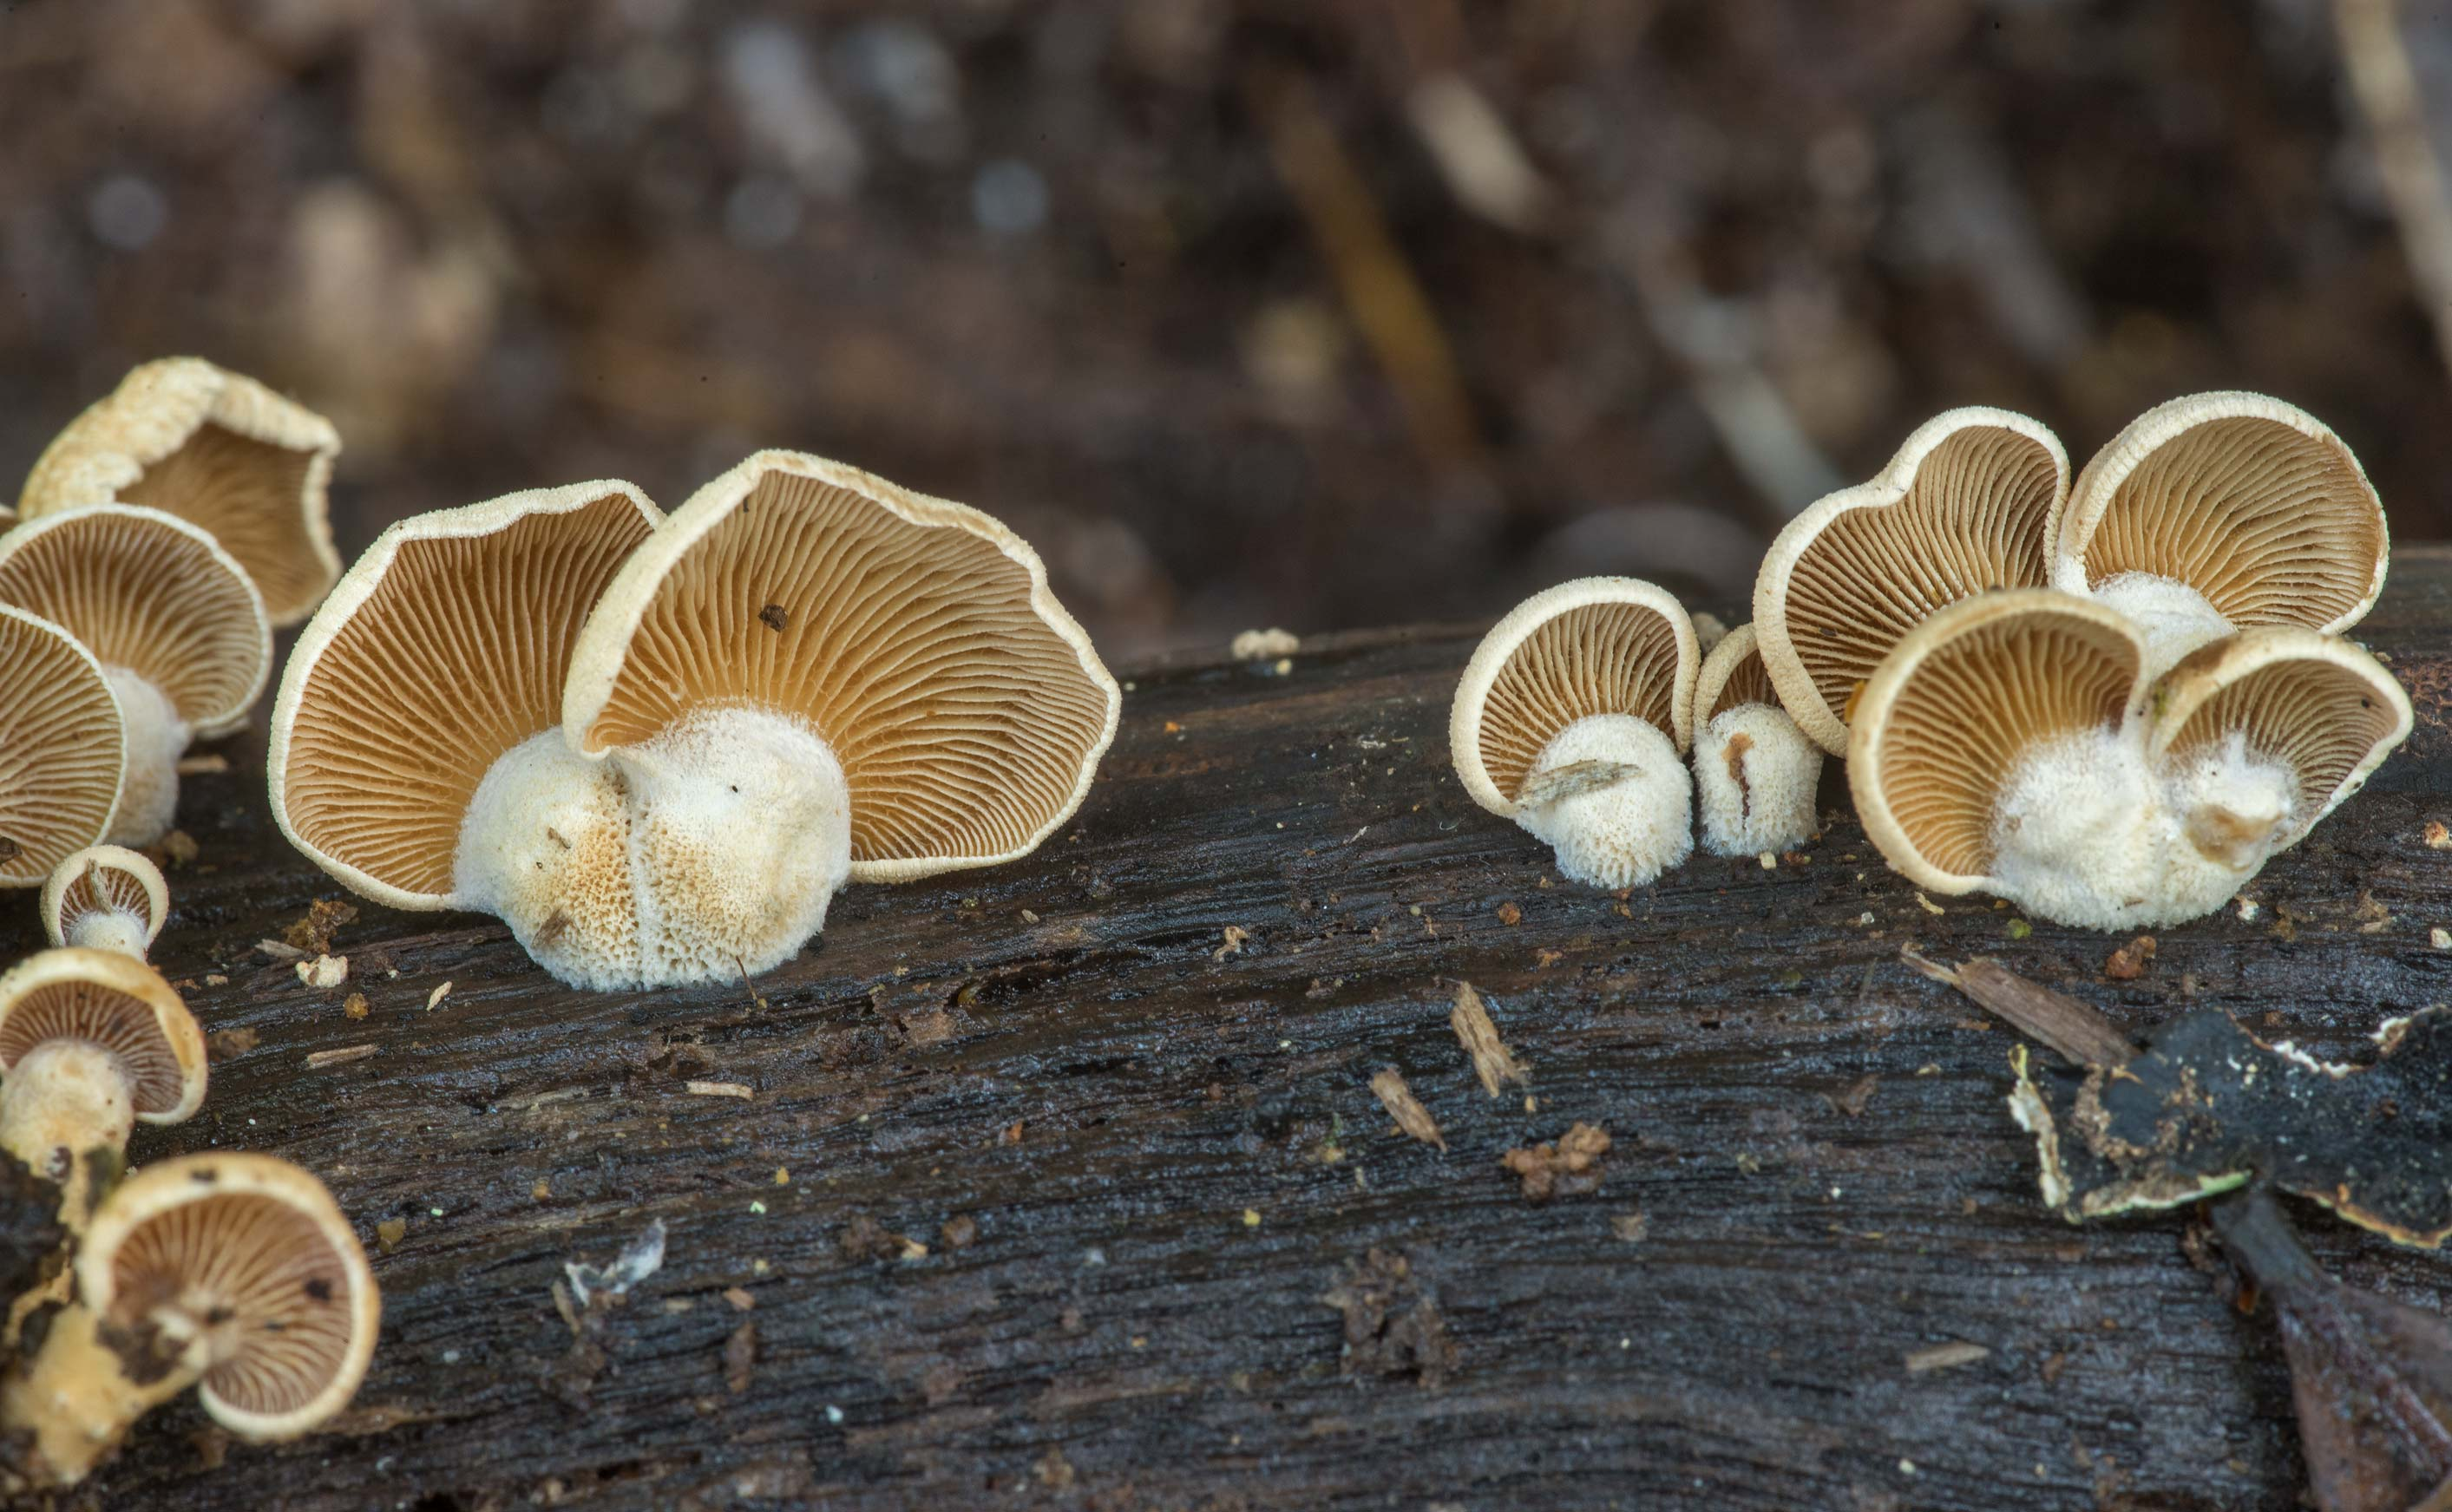 Bitter oysterling mushrooms (Panellus stipticus...National Forest. Shepherd, Texas